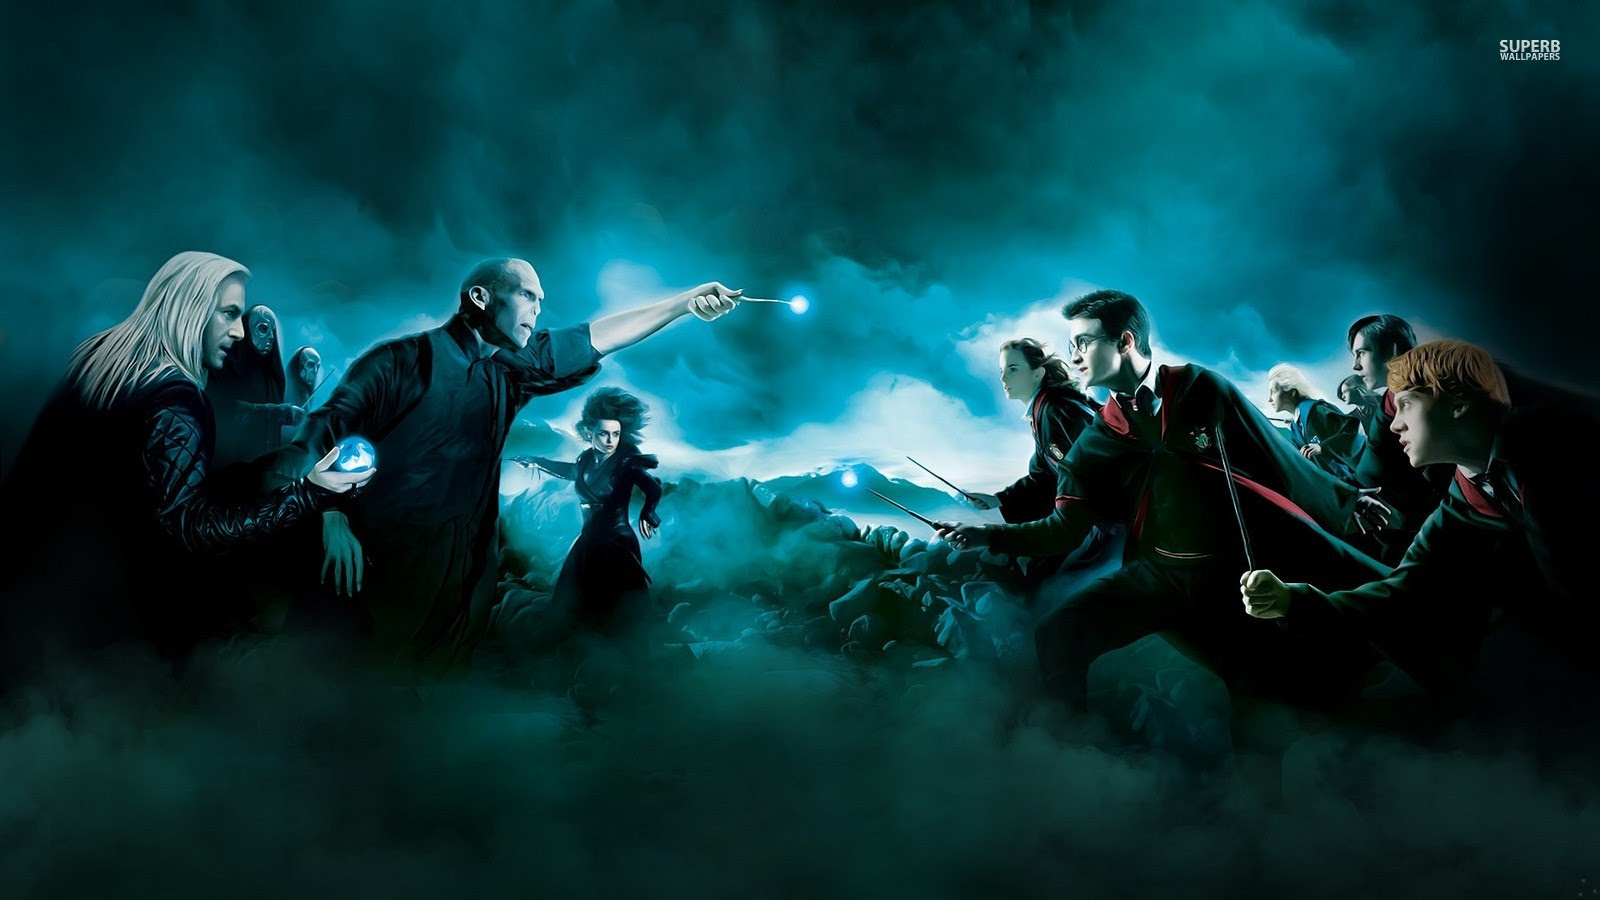 Harry Potter And The Deathly Hallows Harry Potter Wallpaper